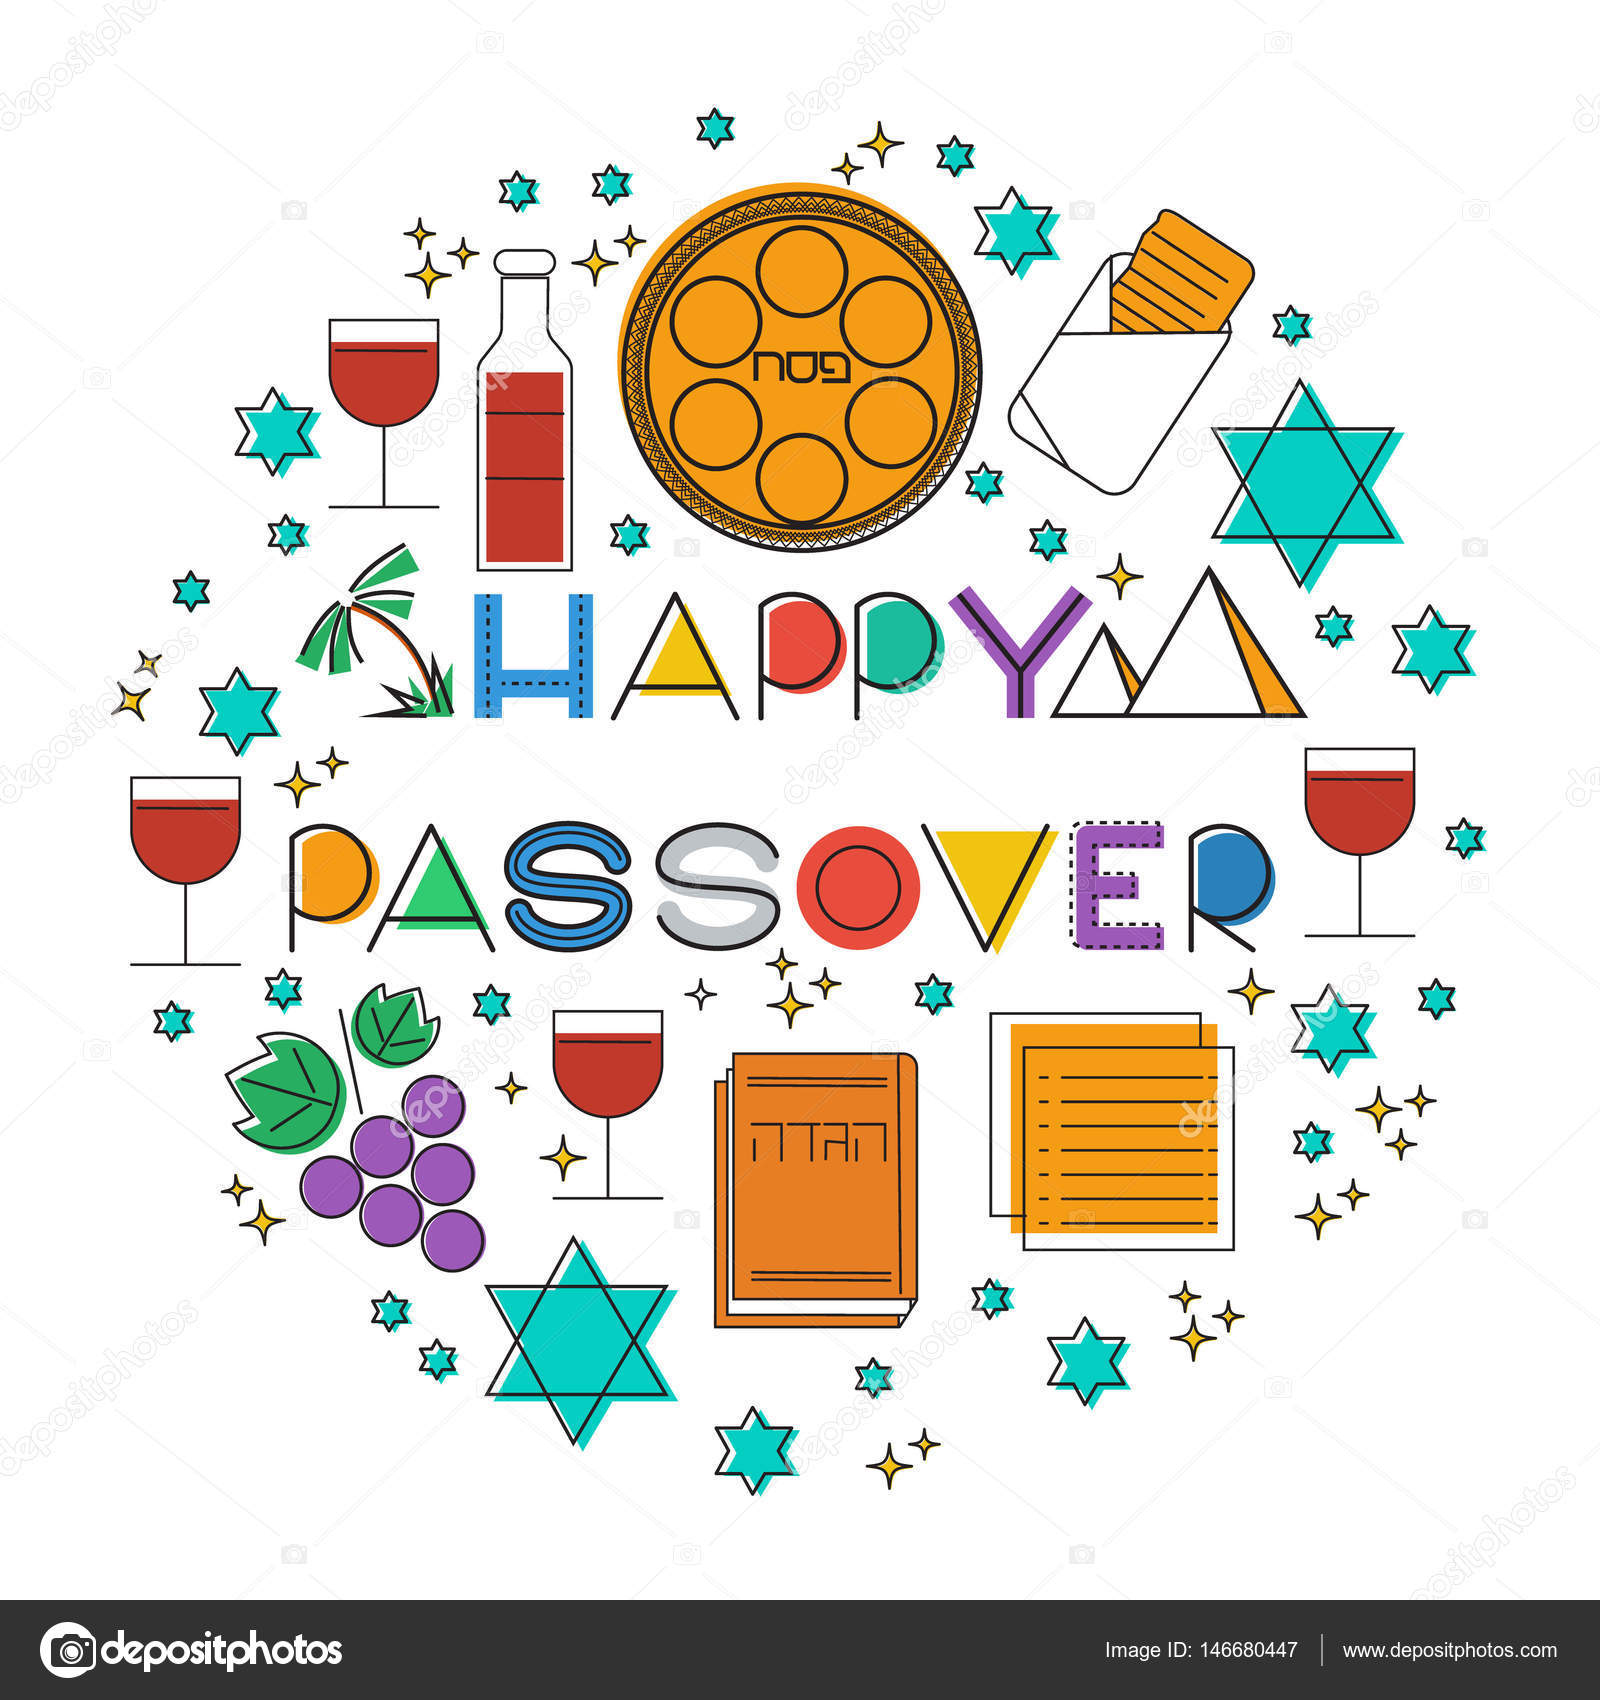 Happy passover greeting card stock vector elinorka 146680447 happy passover greeting card stock vector m4hsunfo